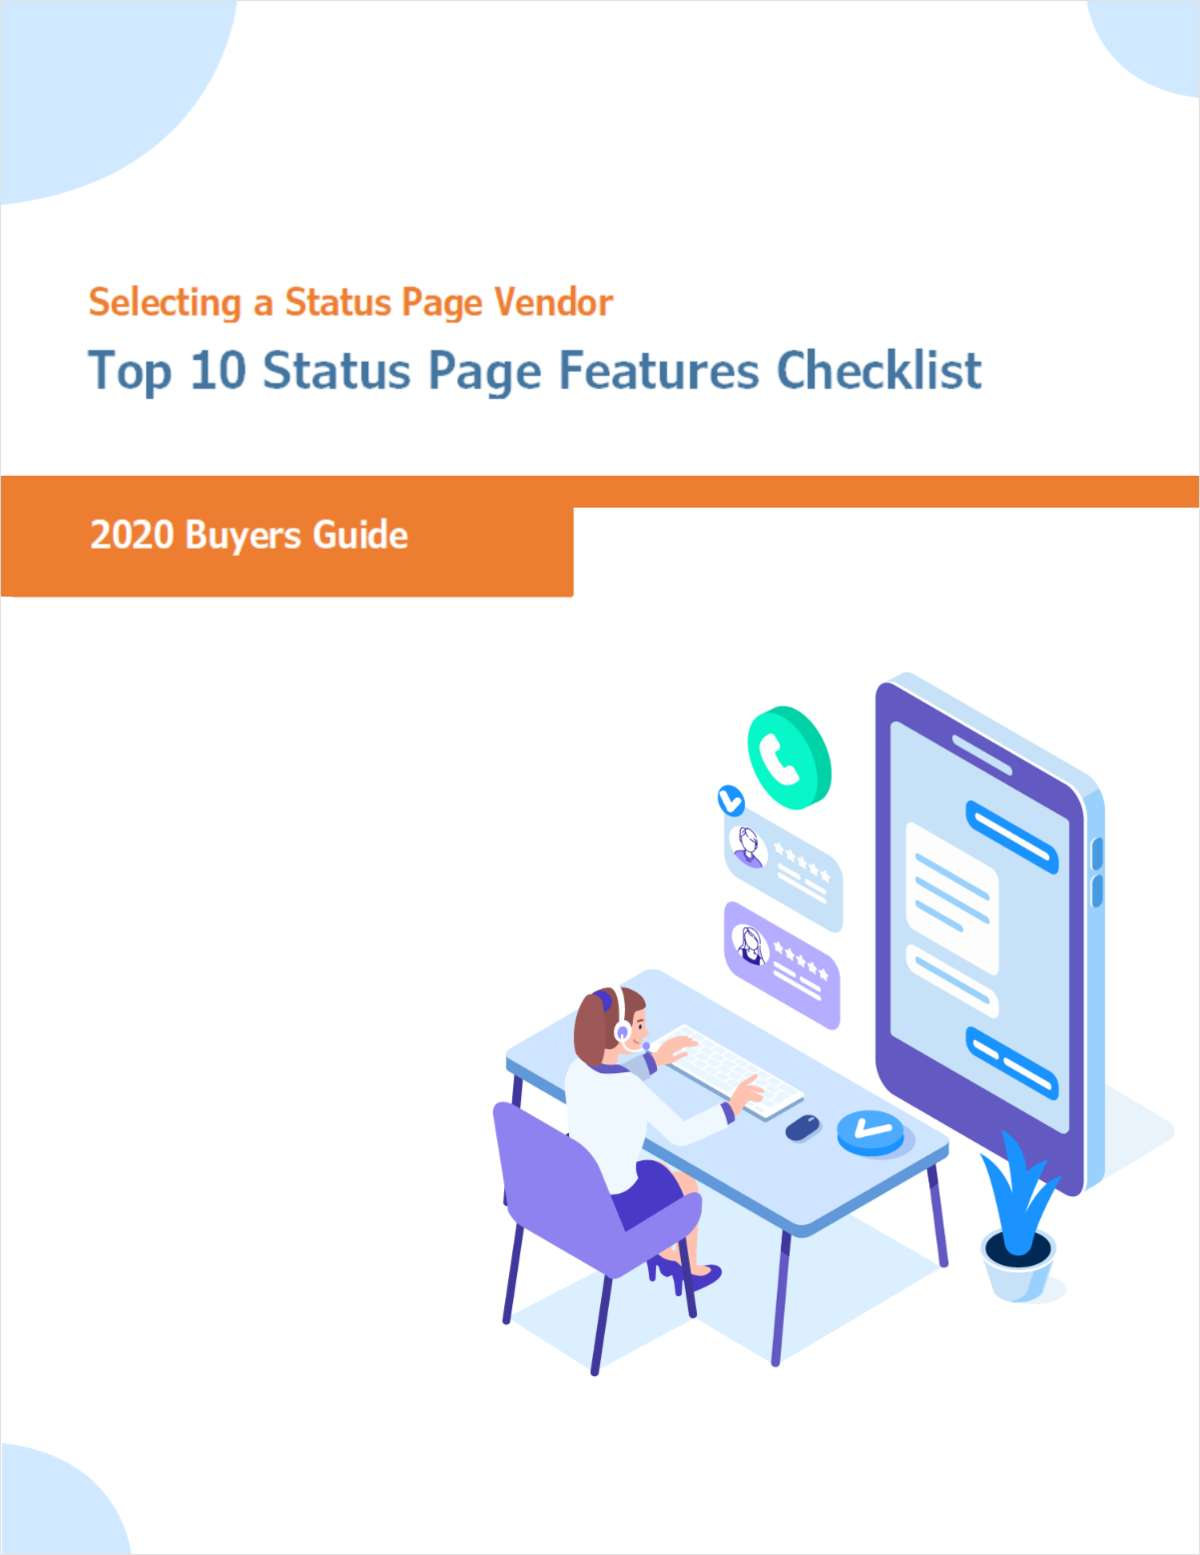 Selecting a Status Page Vendor for IT - Top Status Page Features Checklist